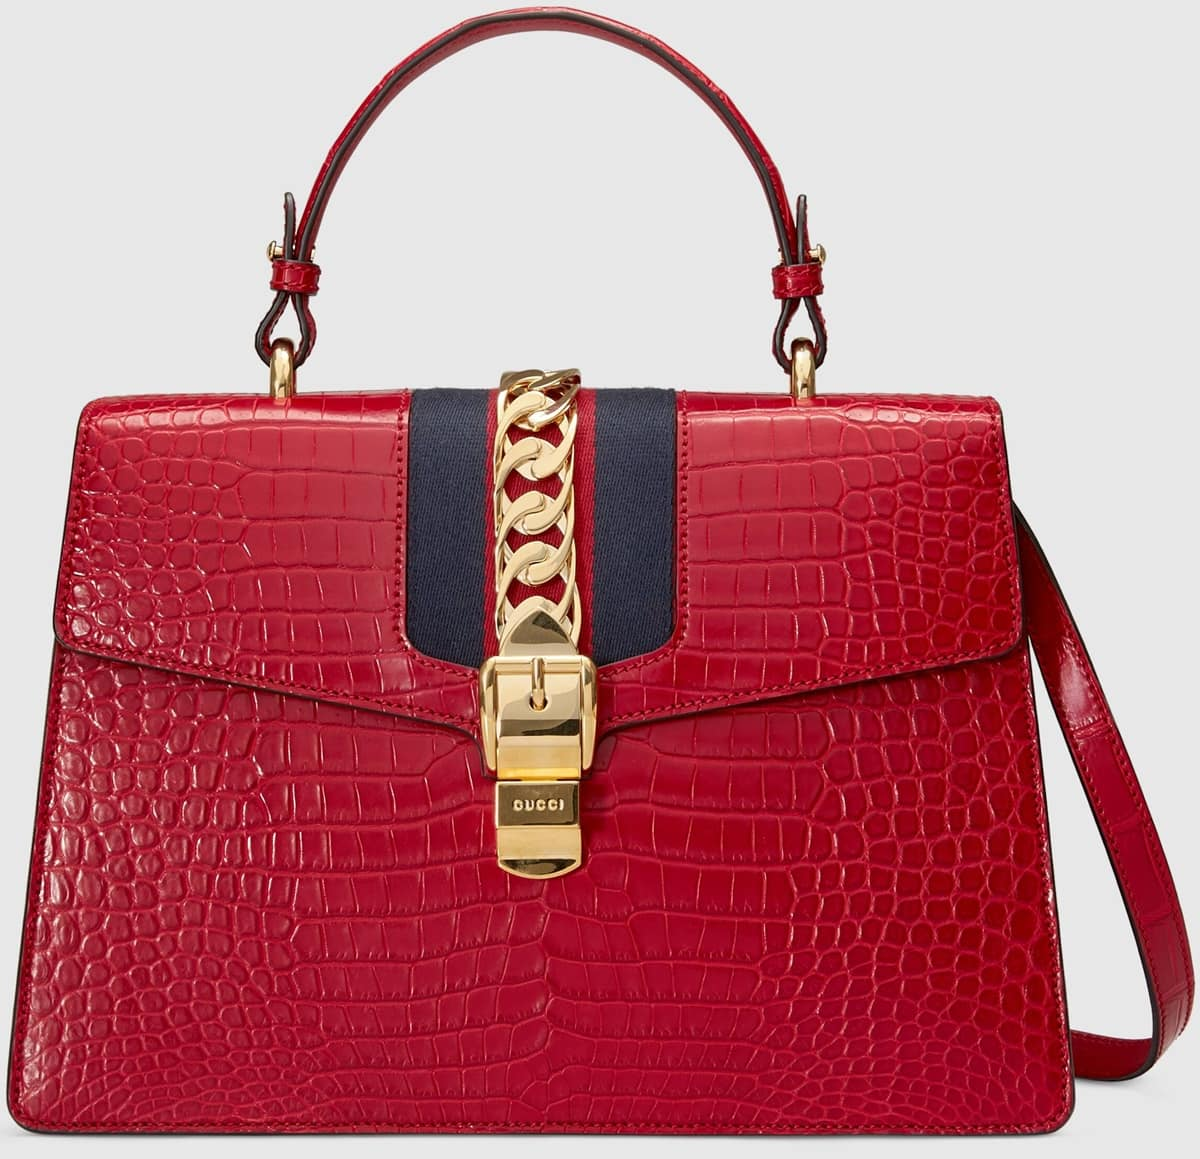 Gucci's Hibiscus red crocodile Sylvie top handle bag decorated with a gold chain and buckle